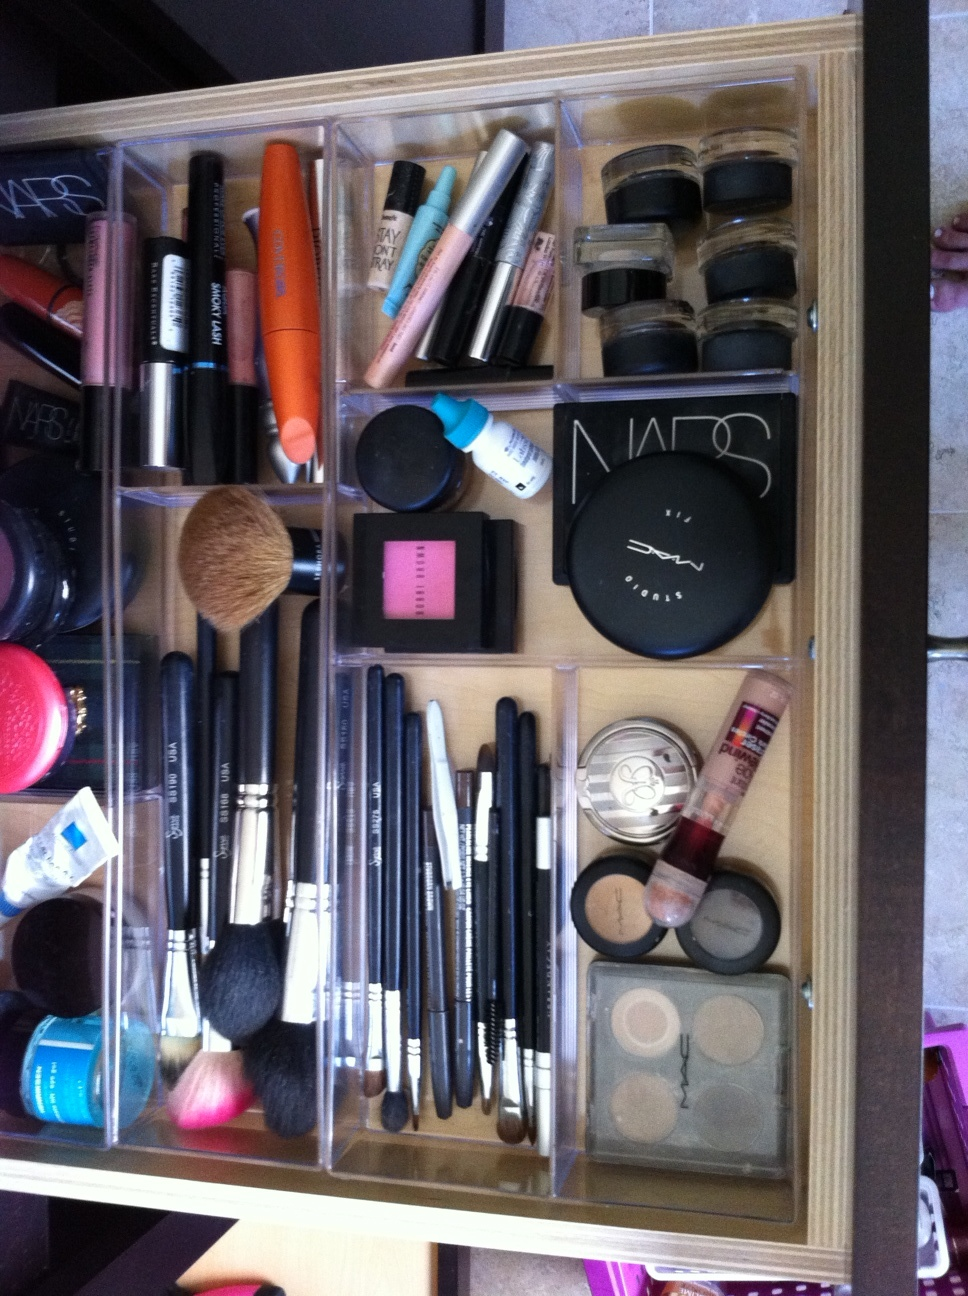 Apr 20, · Here is how i Clean and Organize my Makeup Vanity!♥♥ I always love to reorganize and decorate when the seasons change beauties!♥♥So i thought this was the perfect time to take you with me.